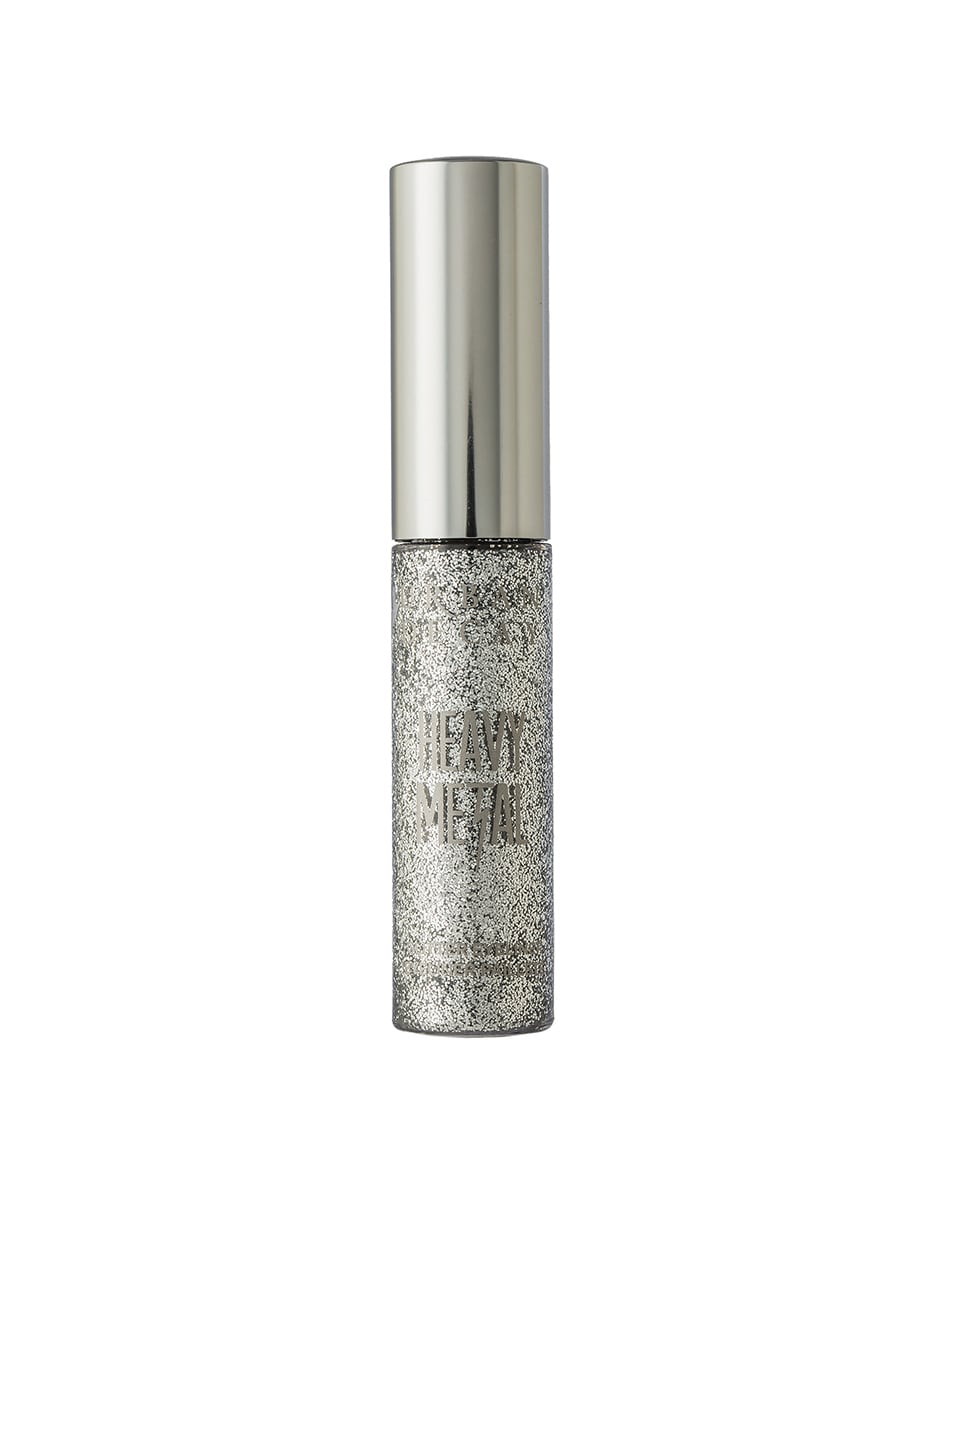 House of Harlow 1960 x Urban Decay Heavy Metal Glitter Eyeliner in Glamrock